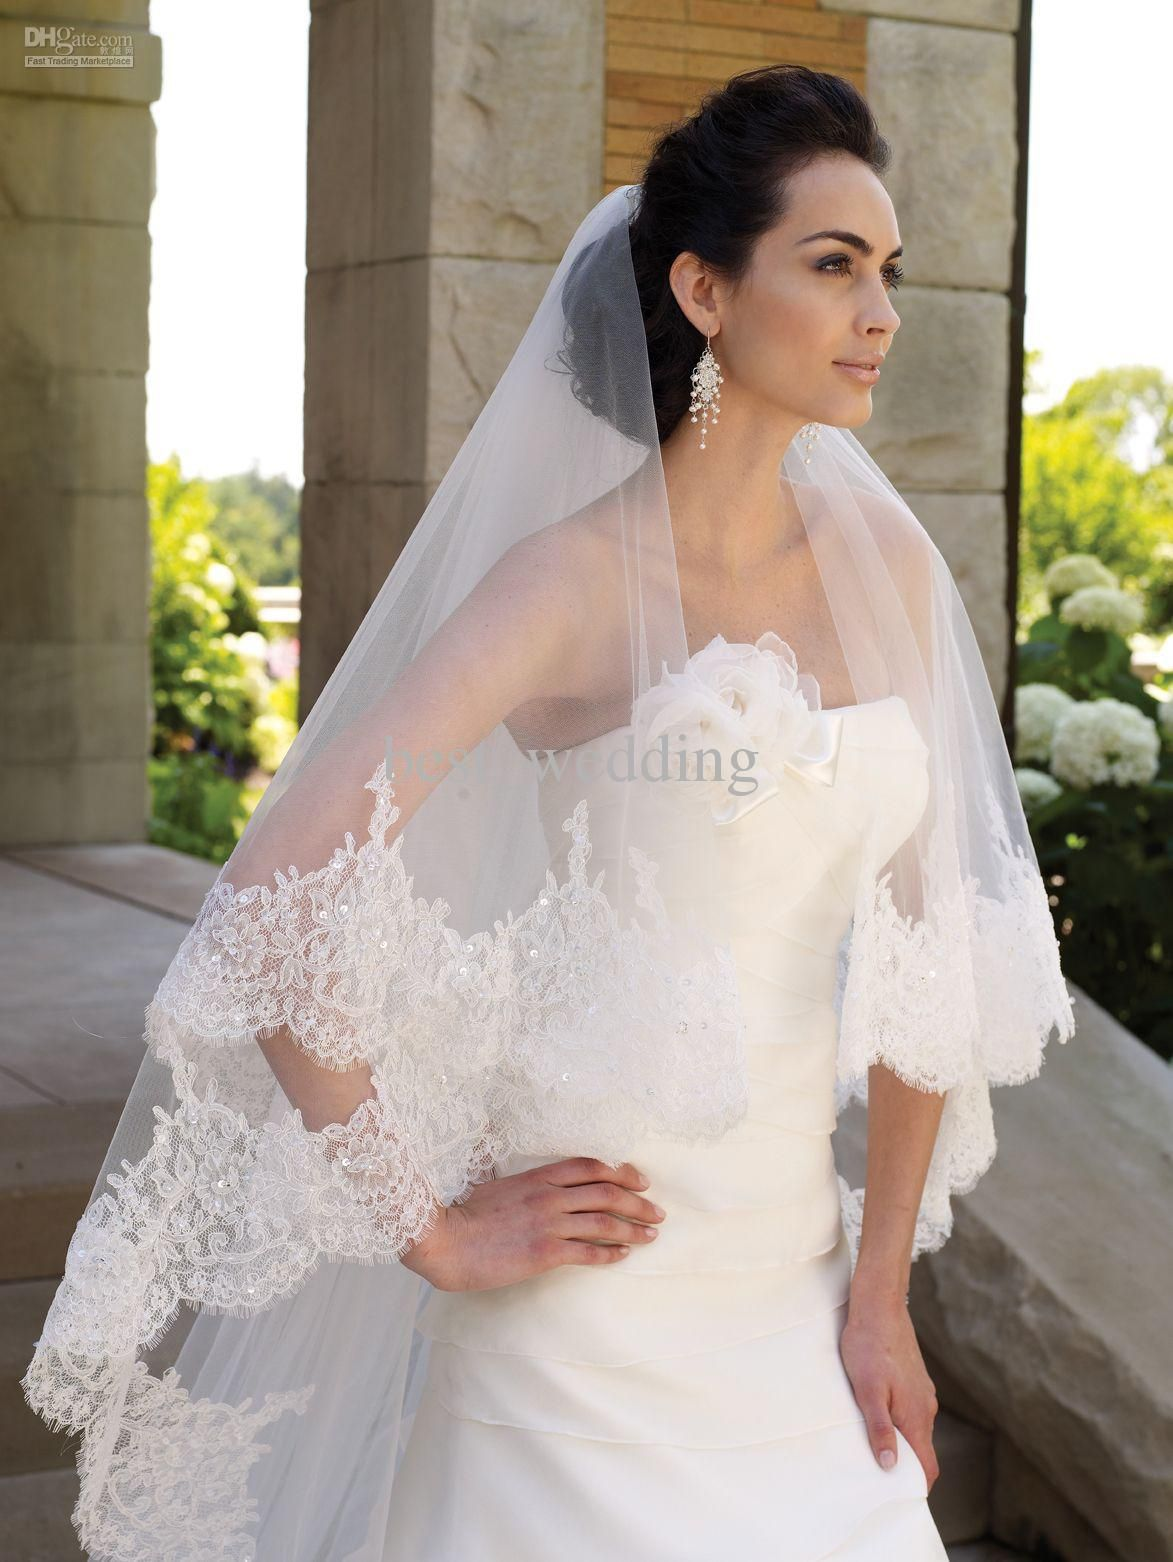 Long veil wedding dresses  Pin by Diamond Bridal Gallery on Veils  Pinterest  Veil Wedding